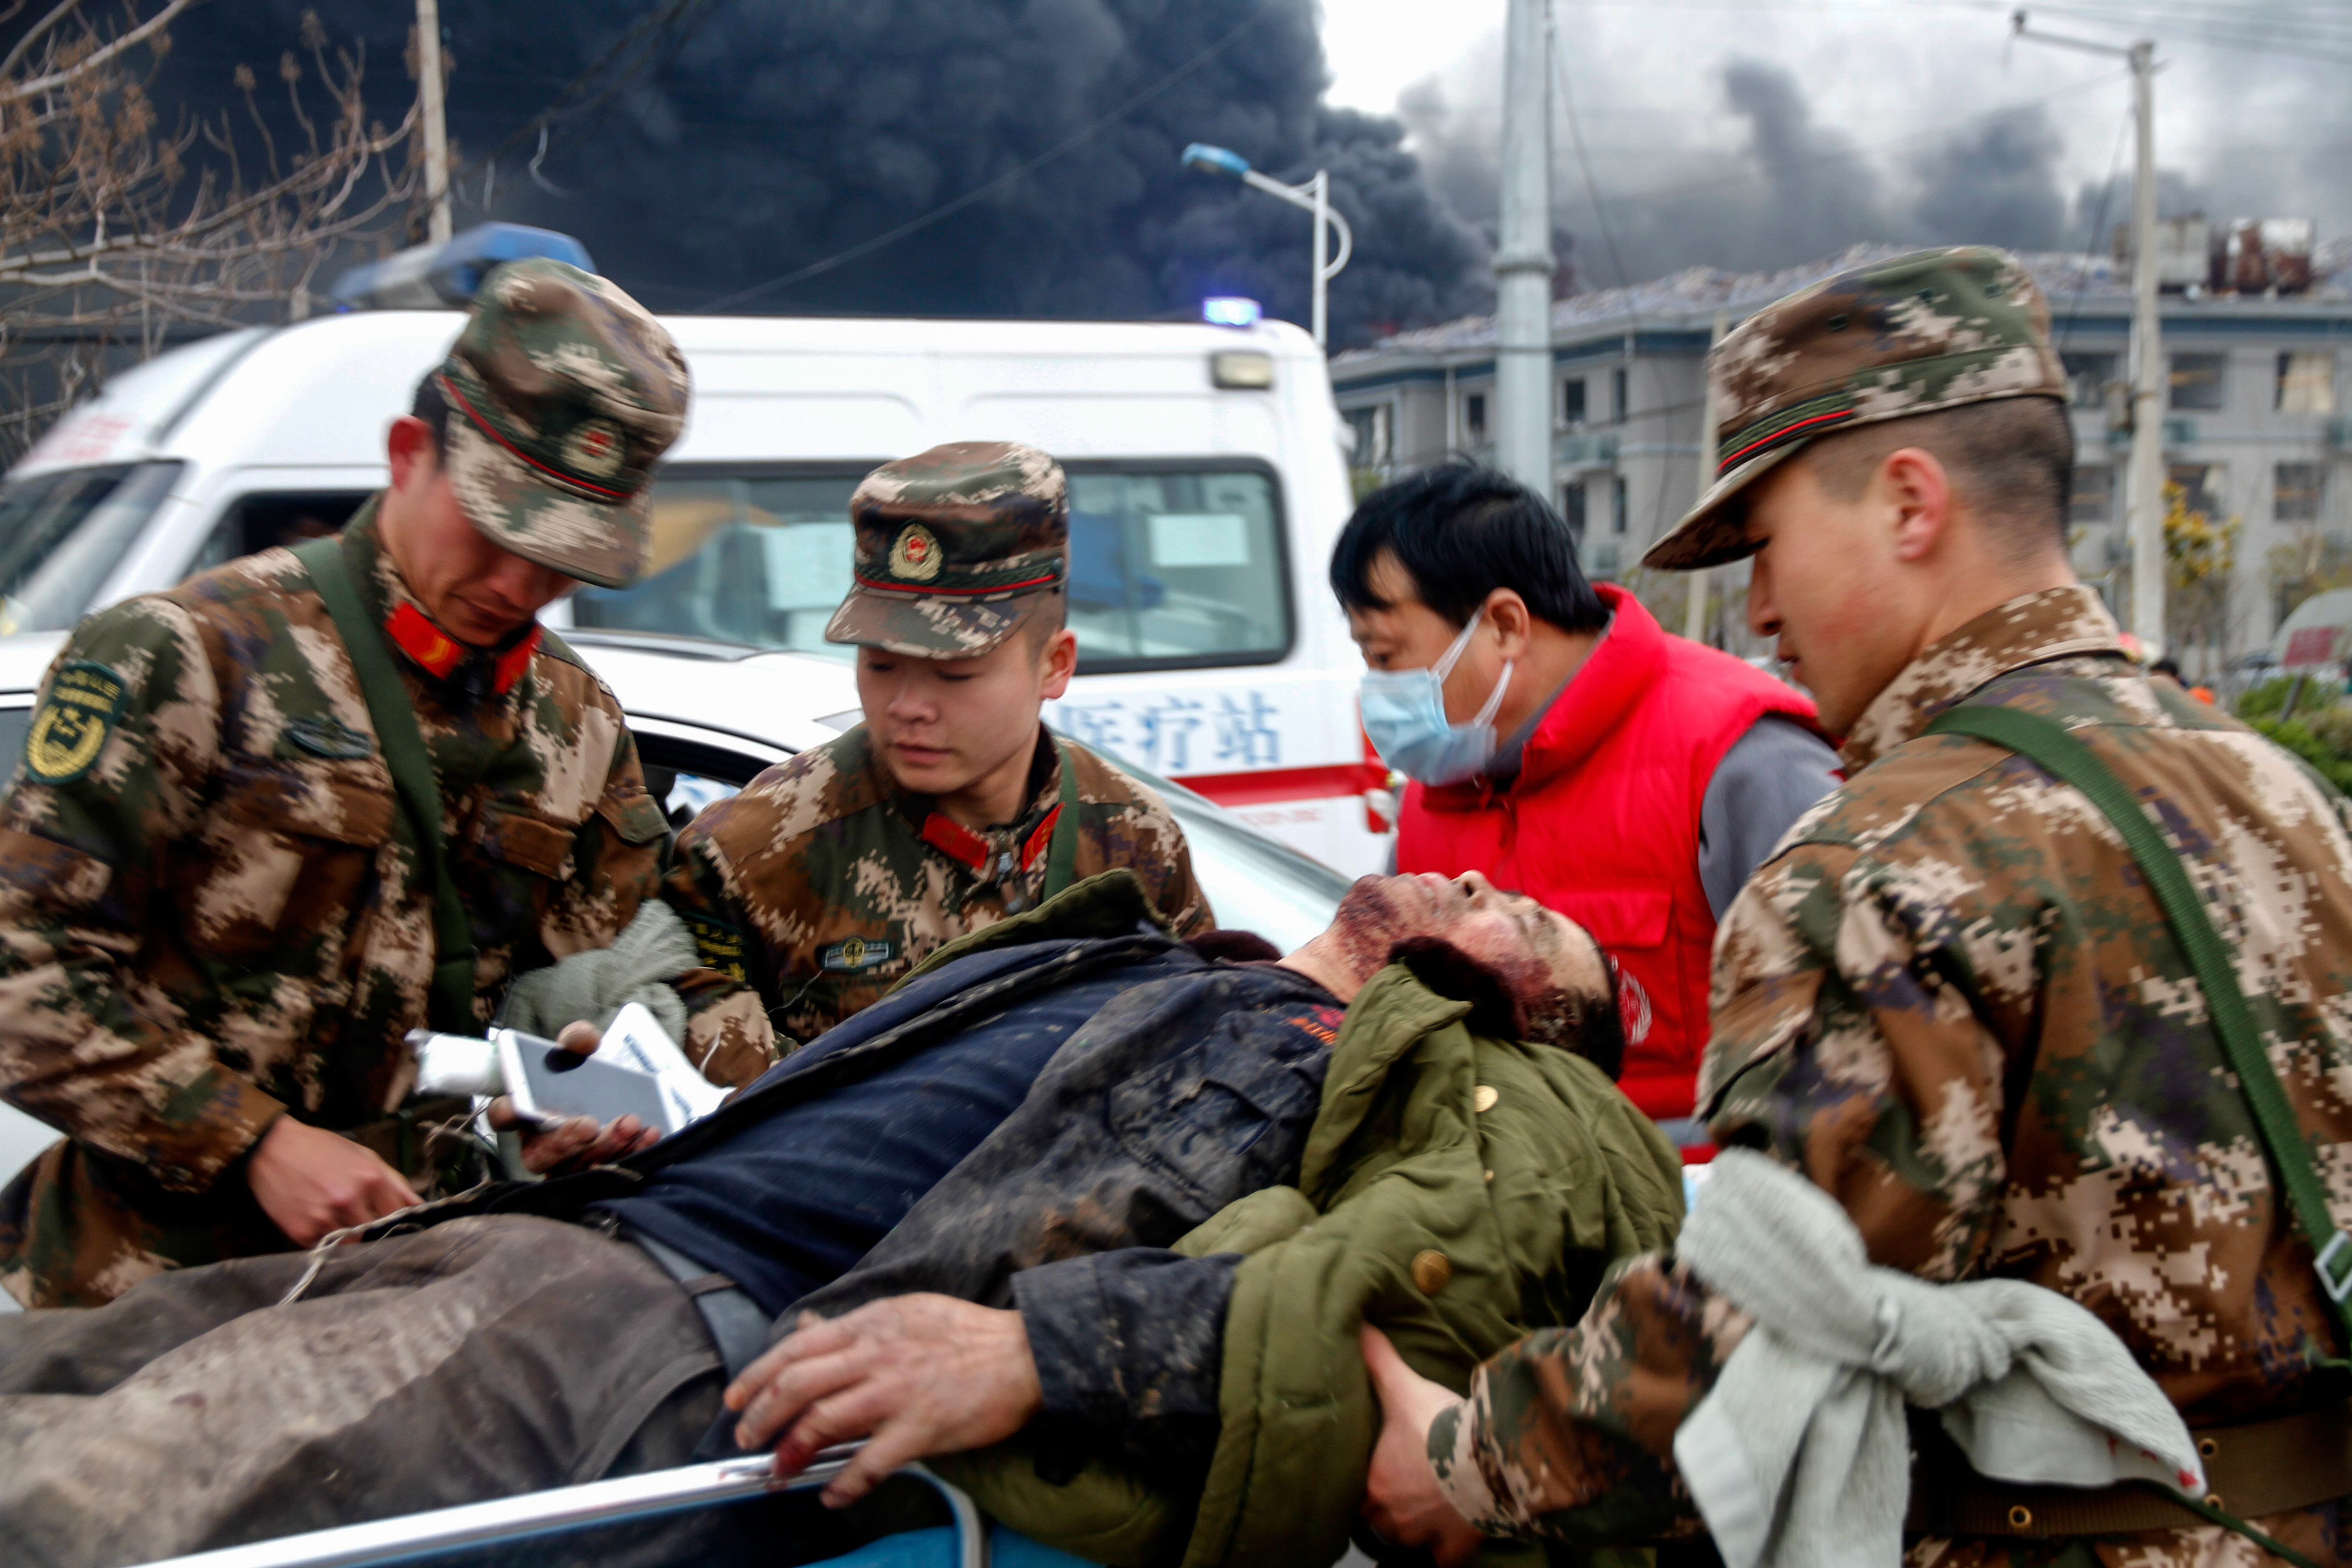 China Chemical Plant Explosion: Massive Blast, Several Casualties Seen In Videos, Photos